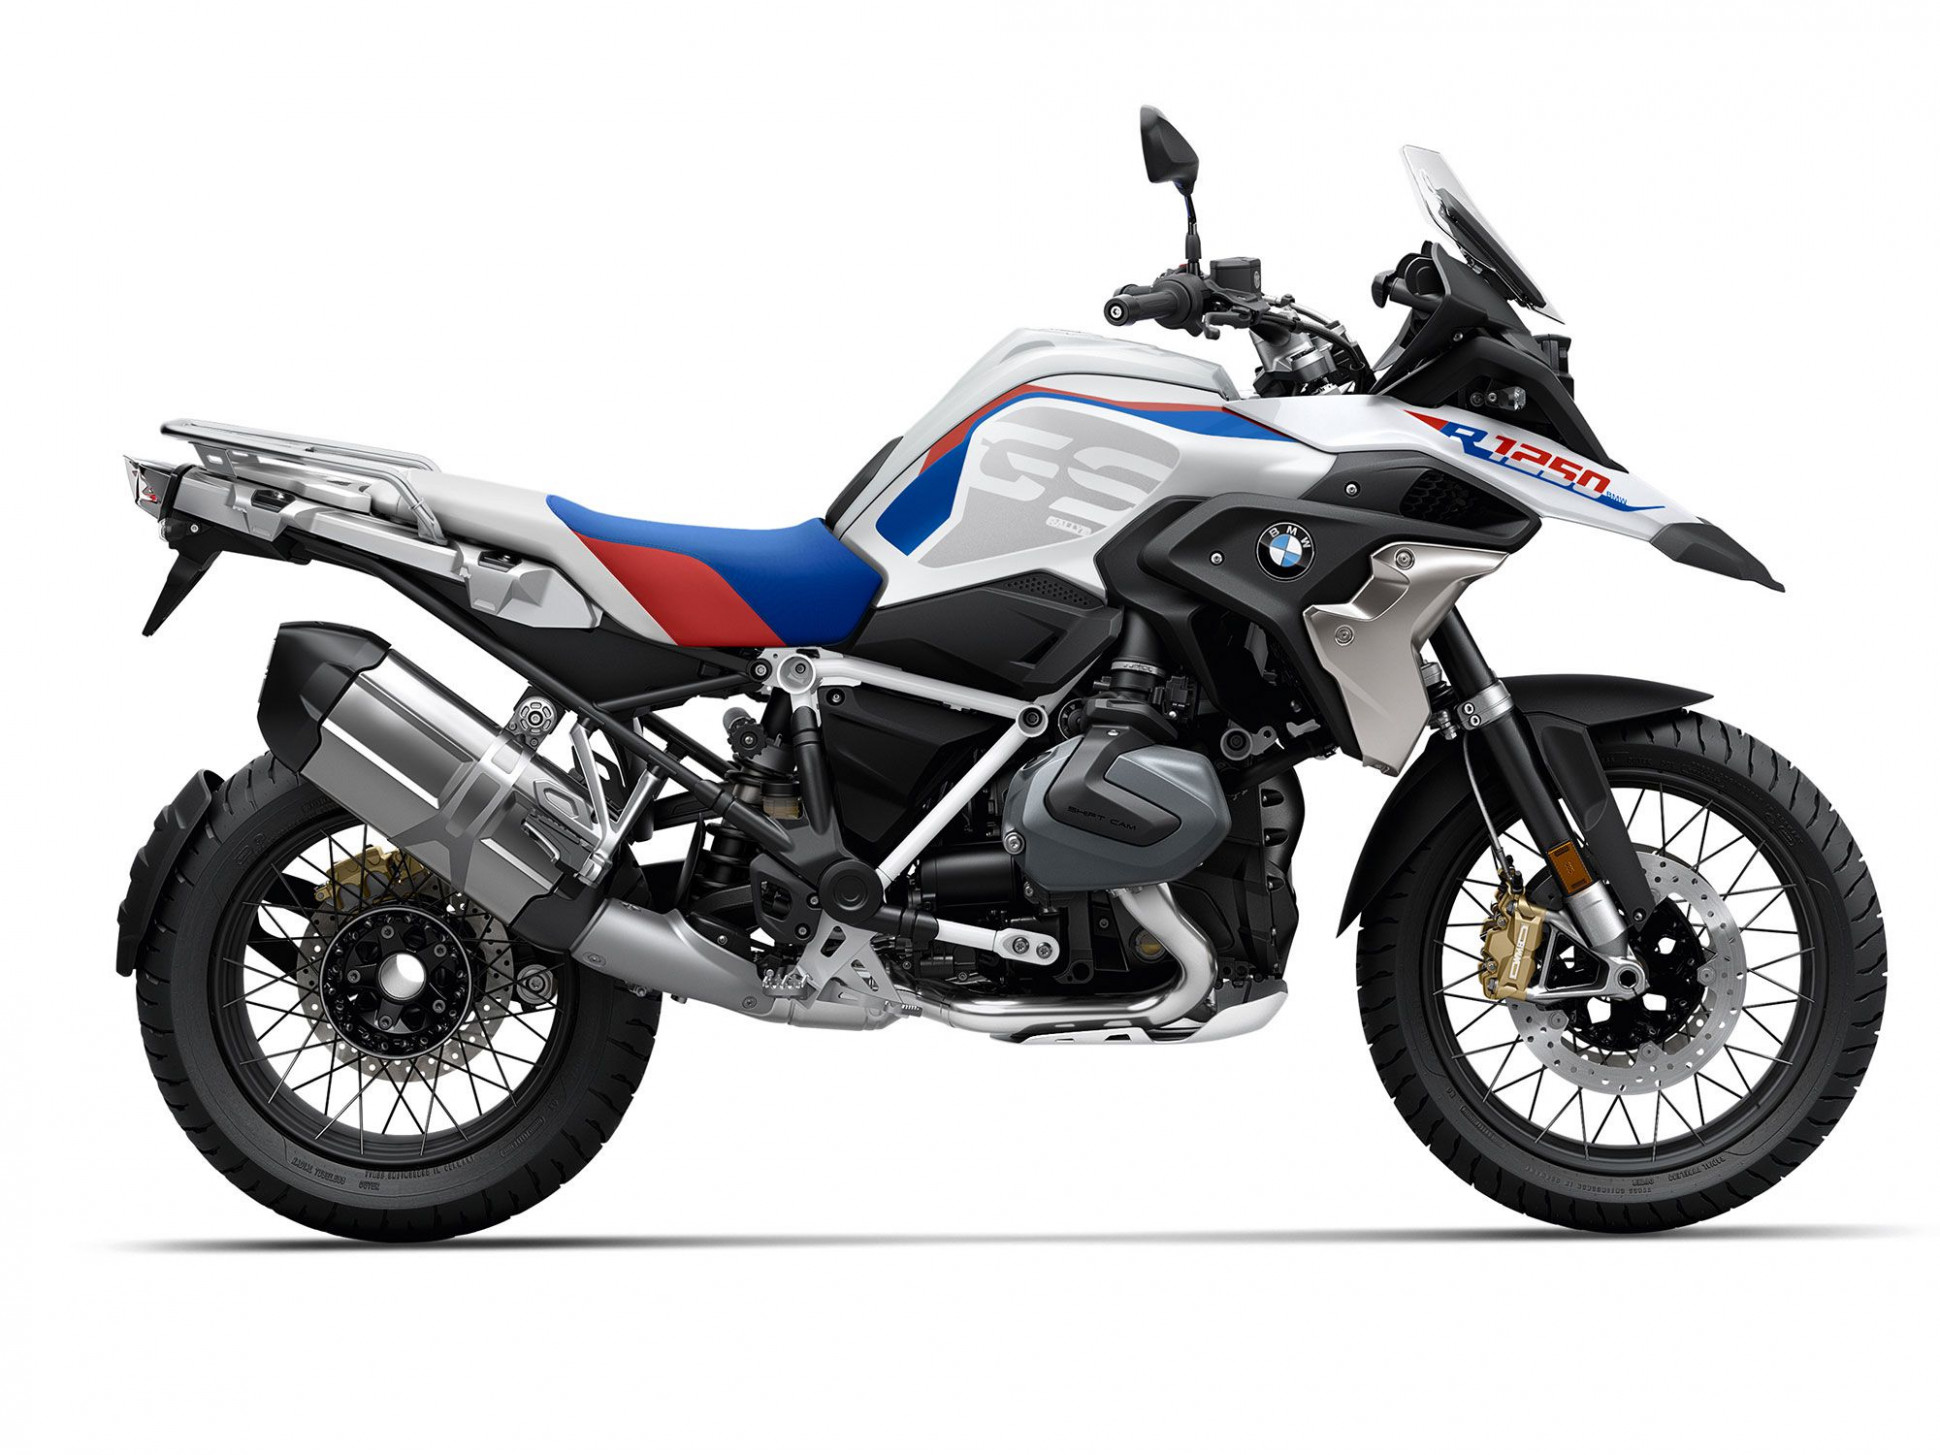 Concept and Review BMW R1250Gs Adventure 2022